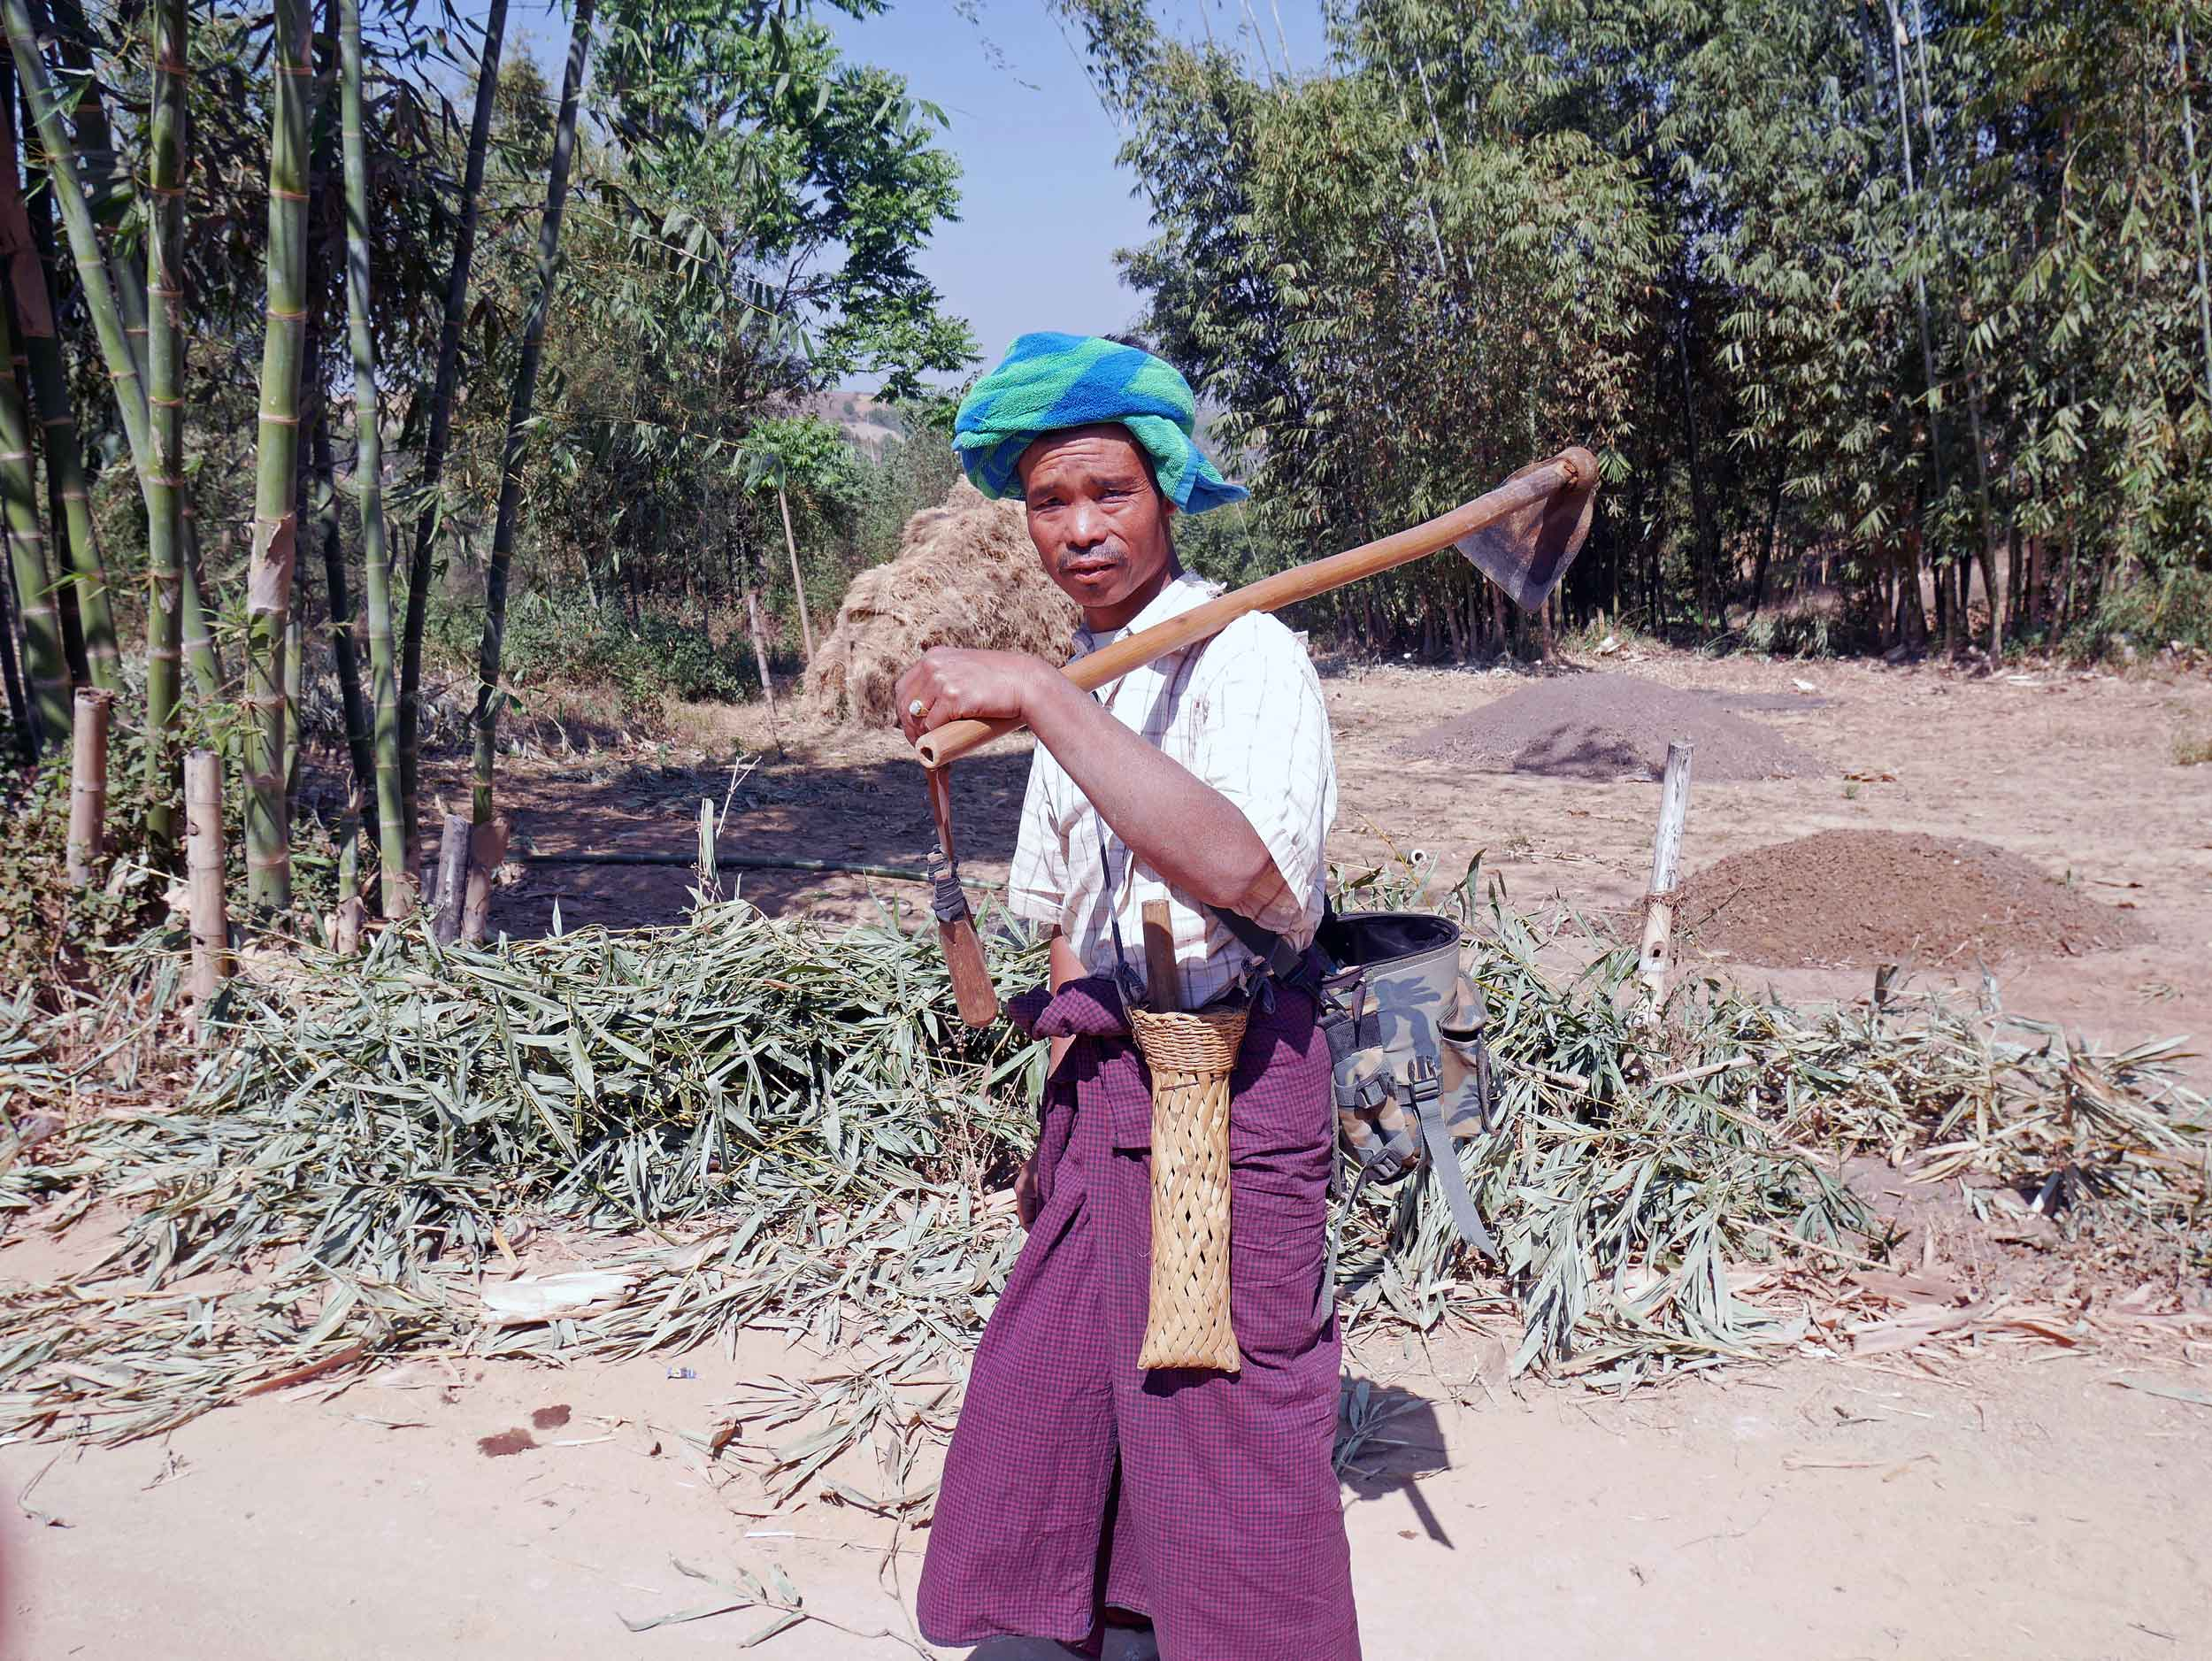 We witnessed much of daily farm life as we passed by on the trail to Inle Lake (Feb 20).